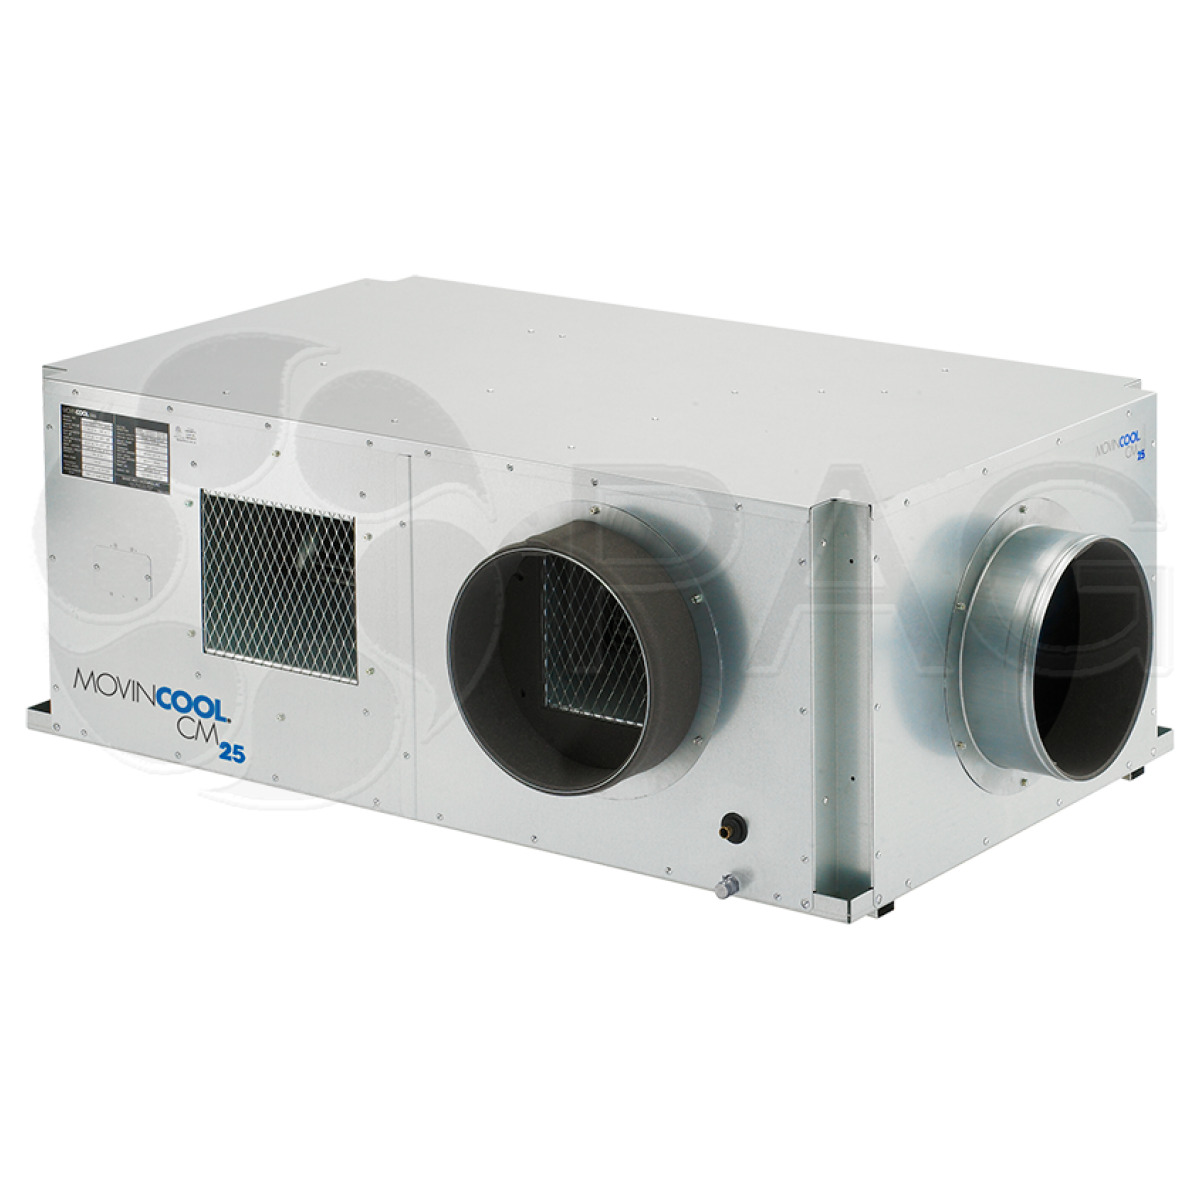 MovinCool CM25 ceiling-mounted industrial air conditioner